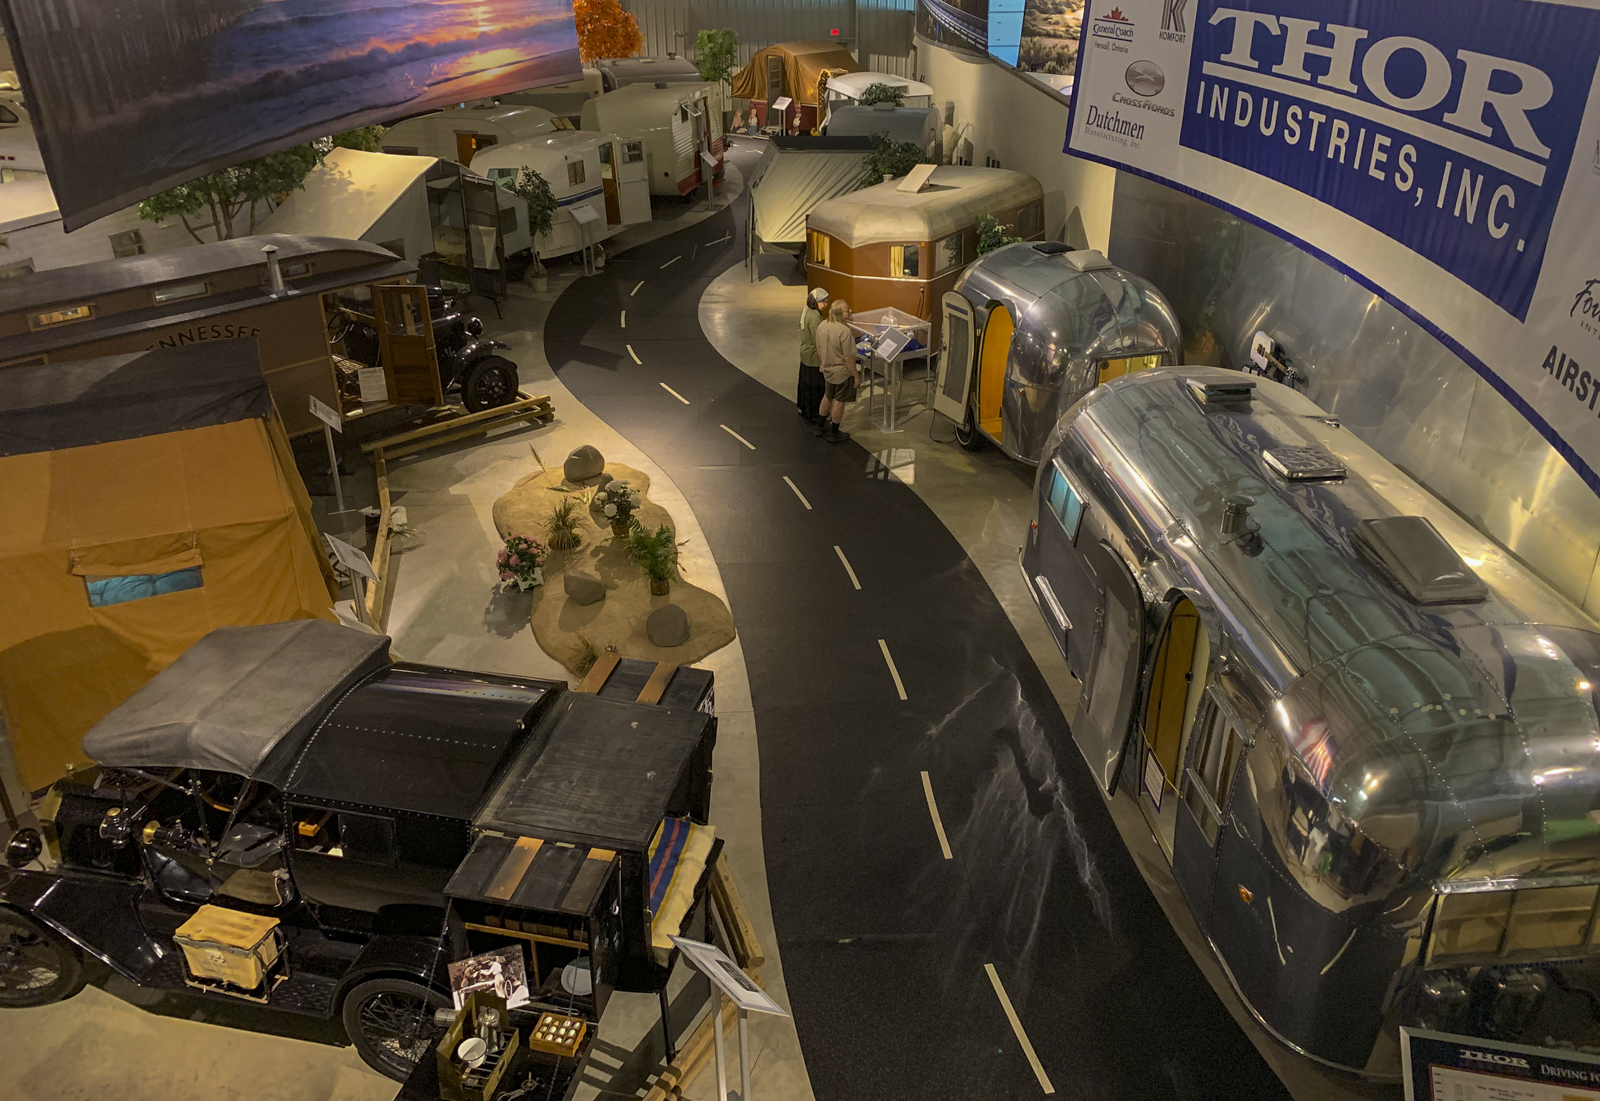 Quite a place, the RV Hall of Fame